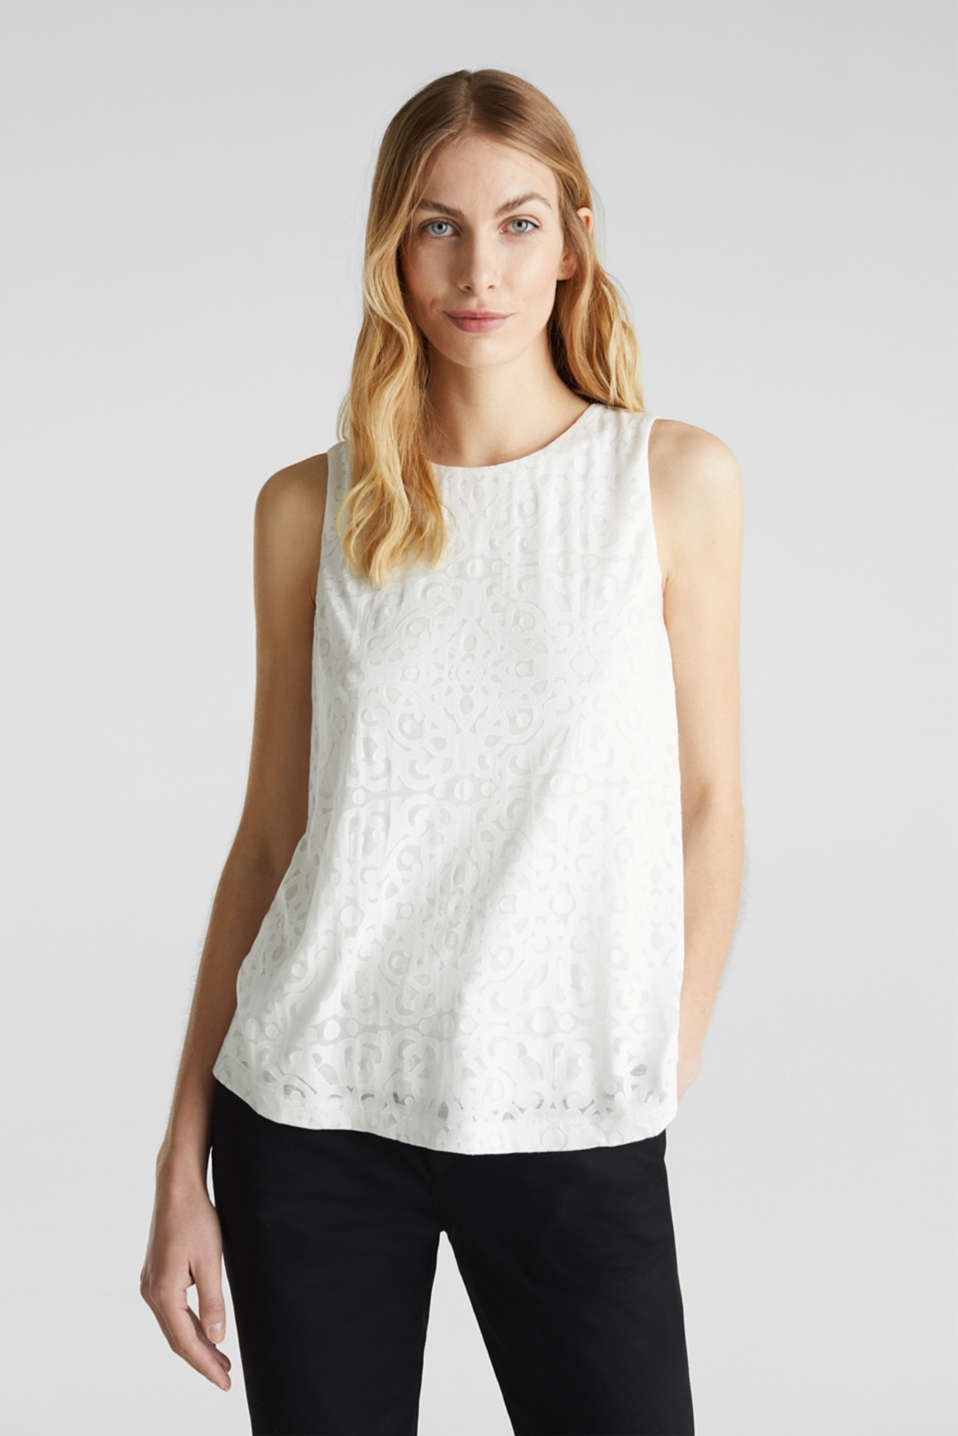 Esprit - Top con estampado ornamental